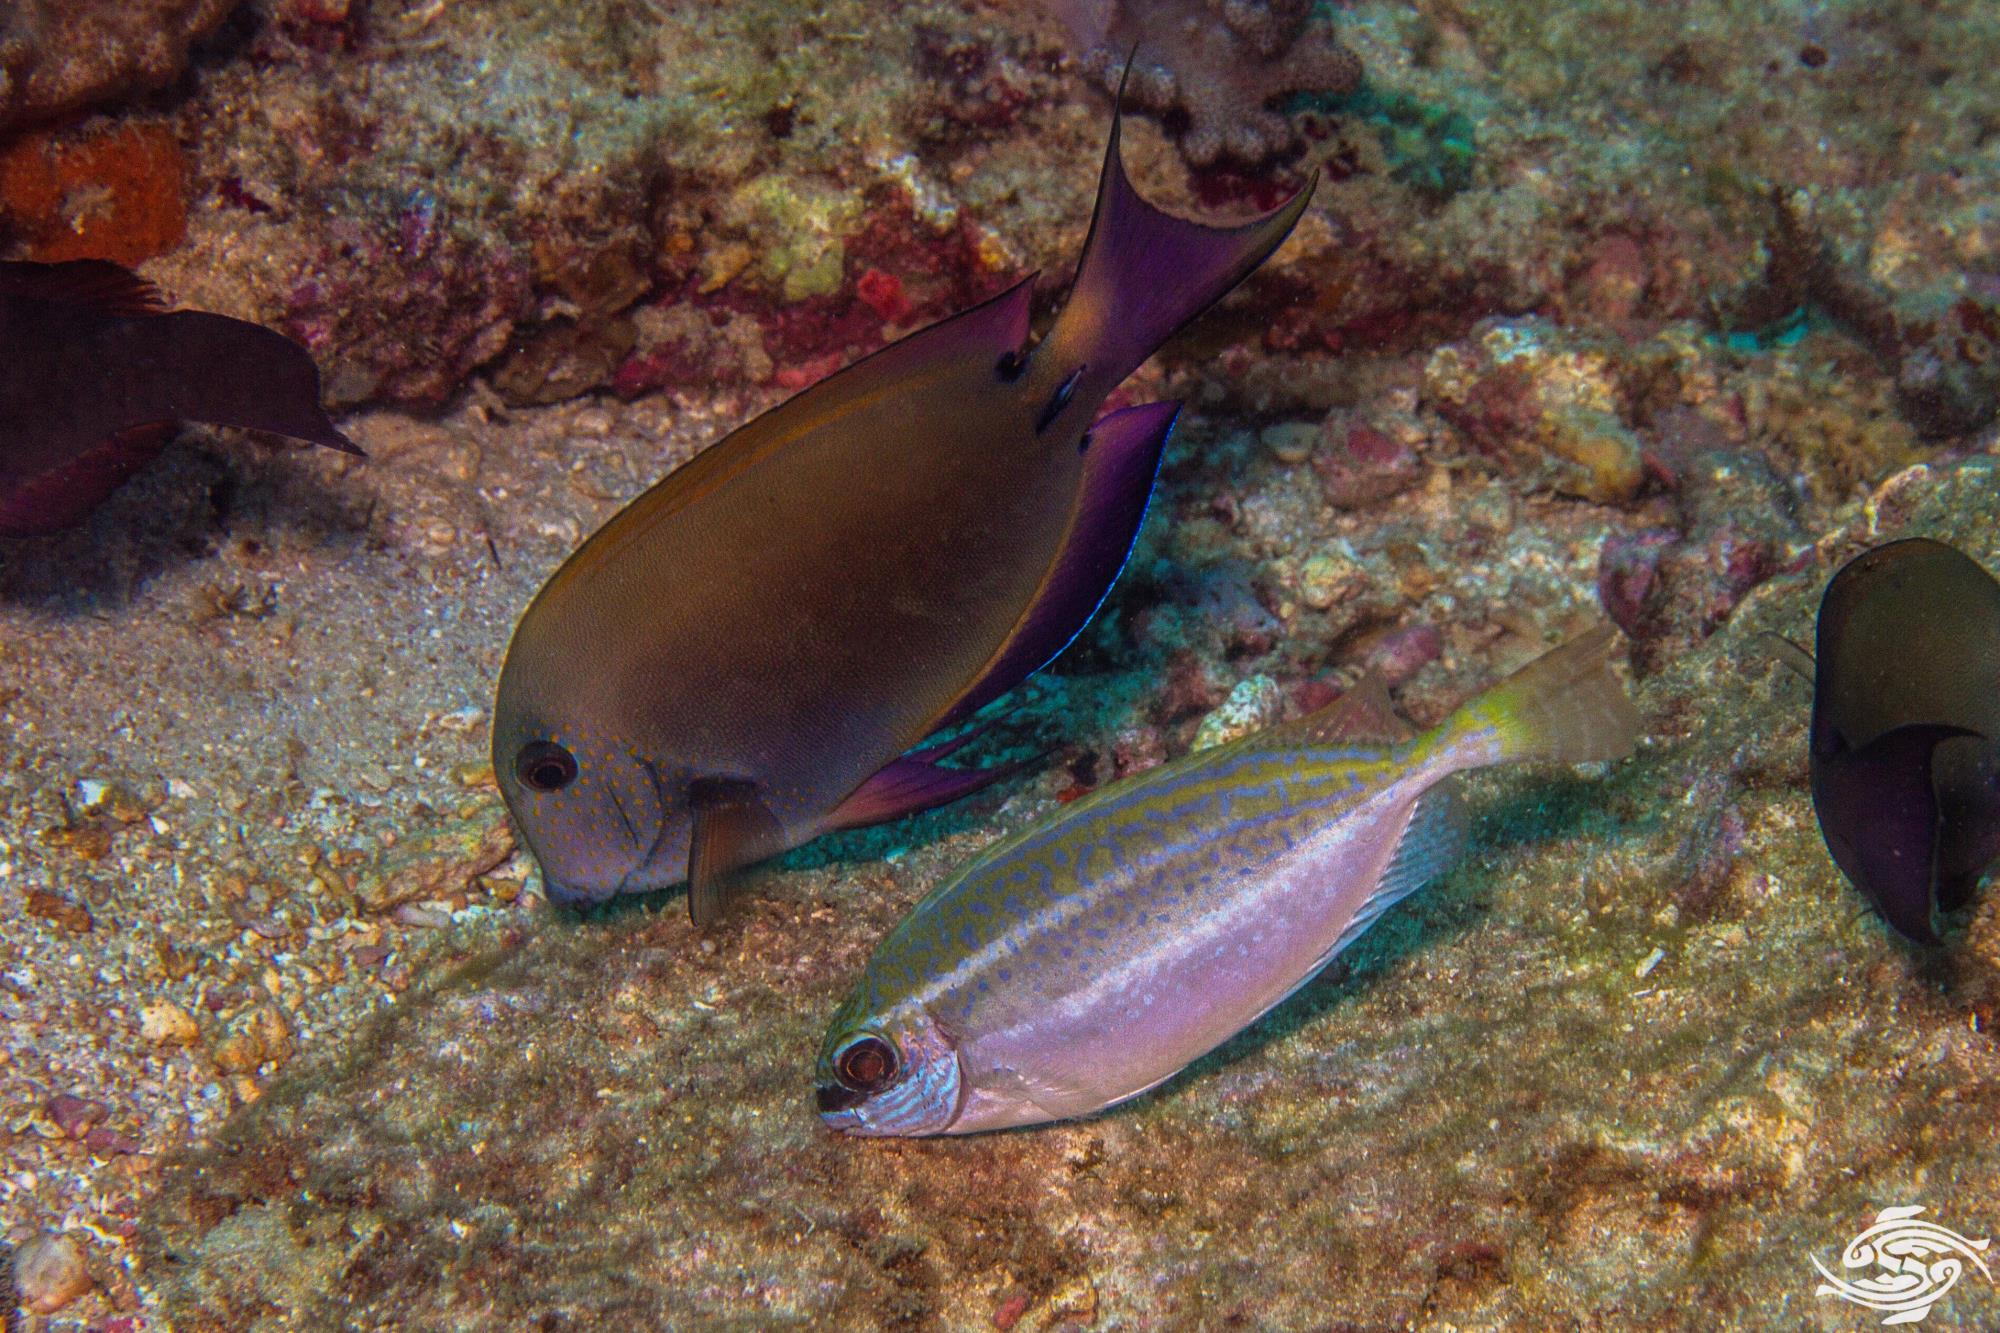 Dusky Rabbitfish (Siganus luridus)is also known as the Squaretail Rabbitfish and the Dusky Spinefoot